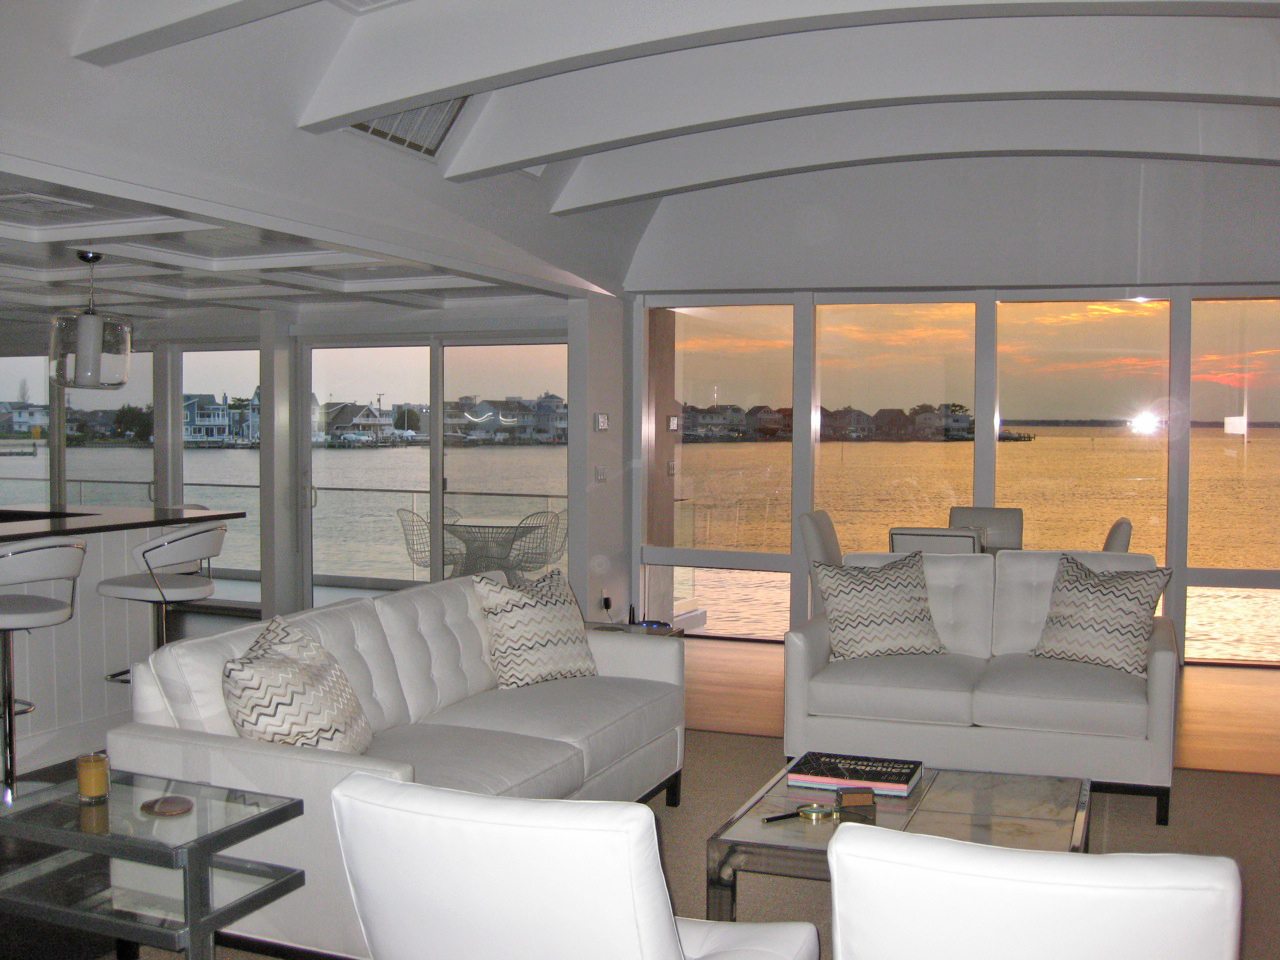 Alm Interior Design Alison L Murphy Interior Designer New Jersey Beach House